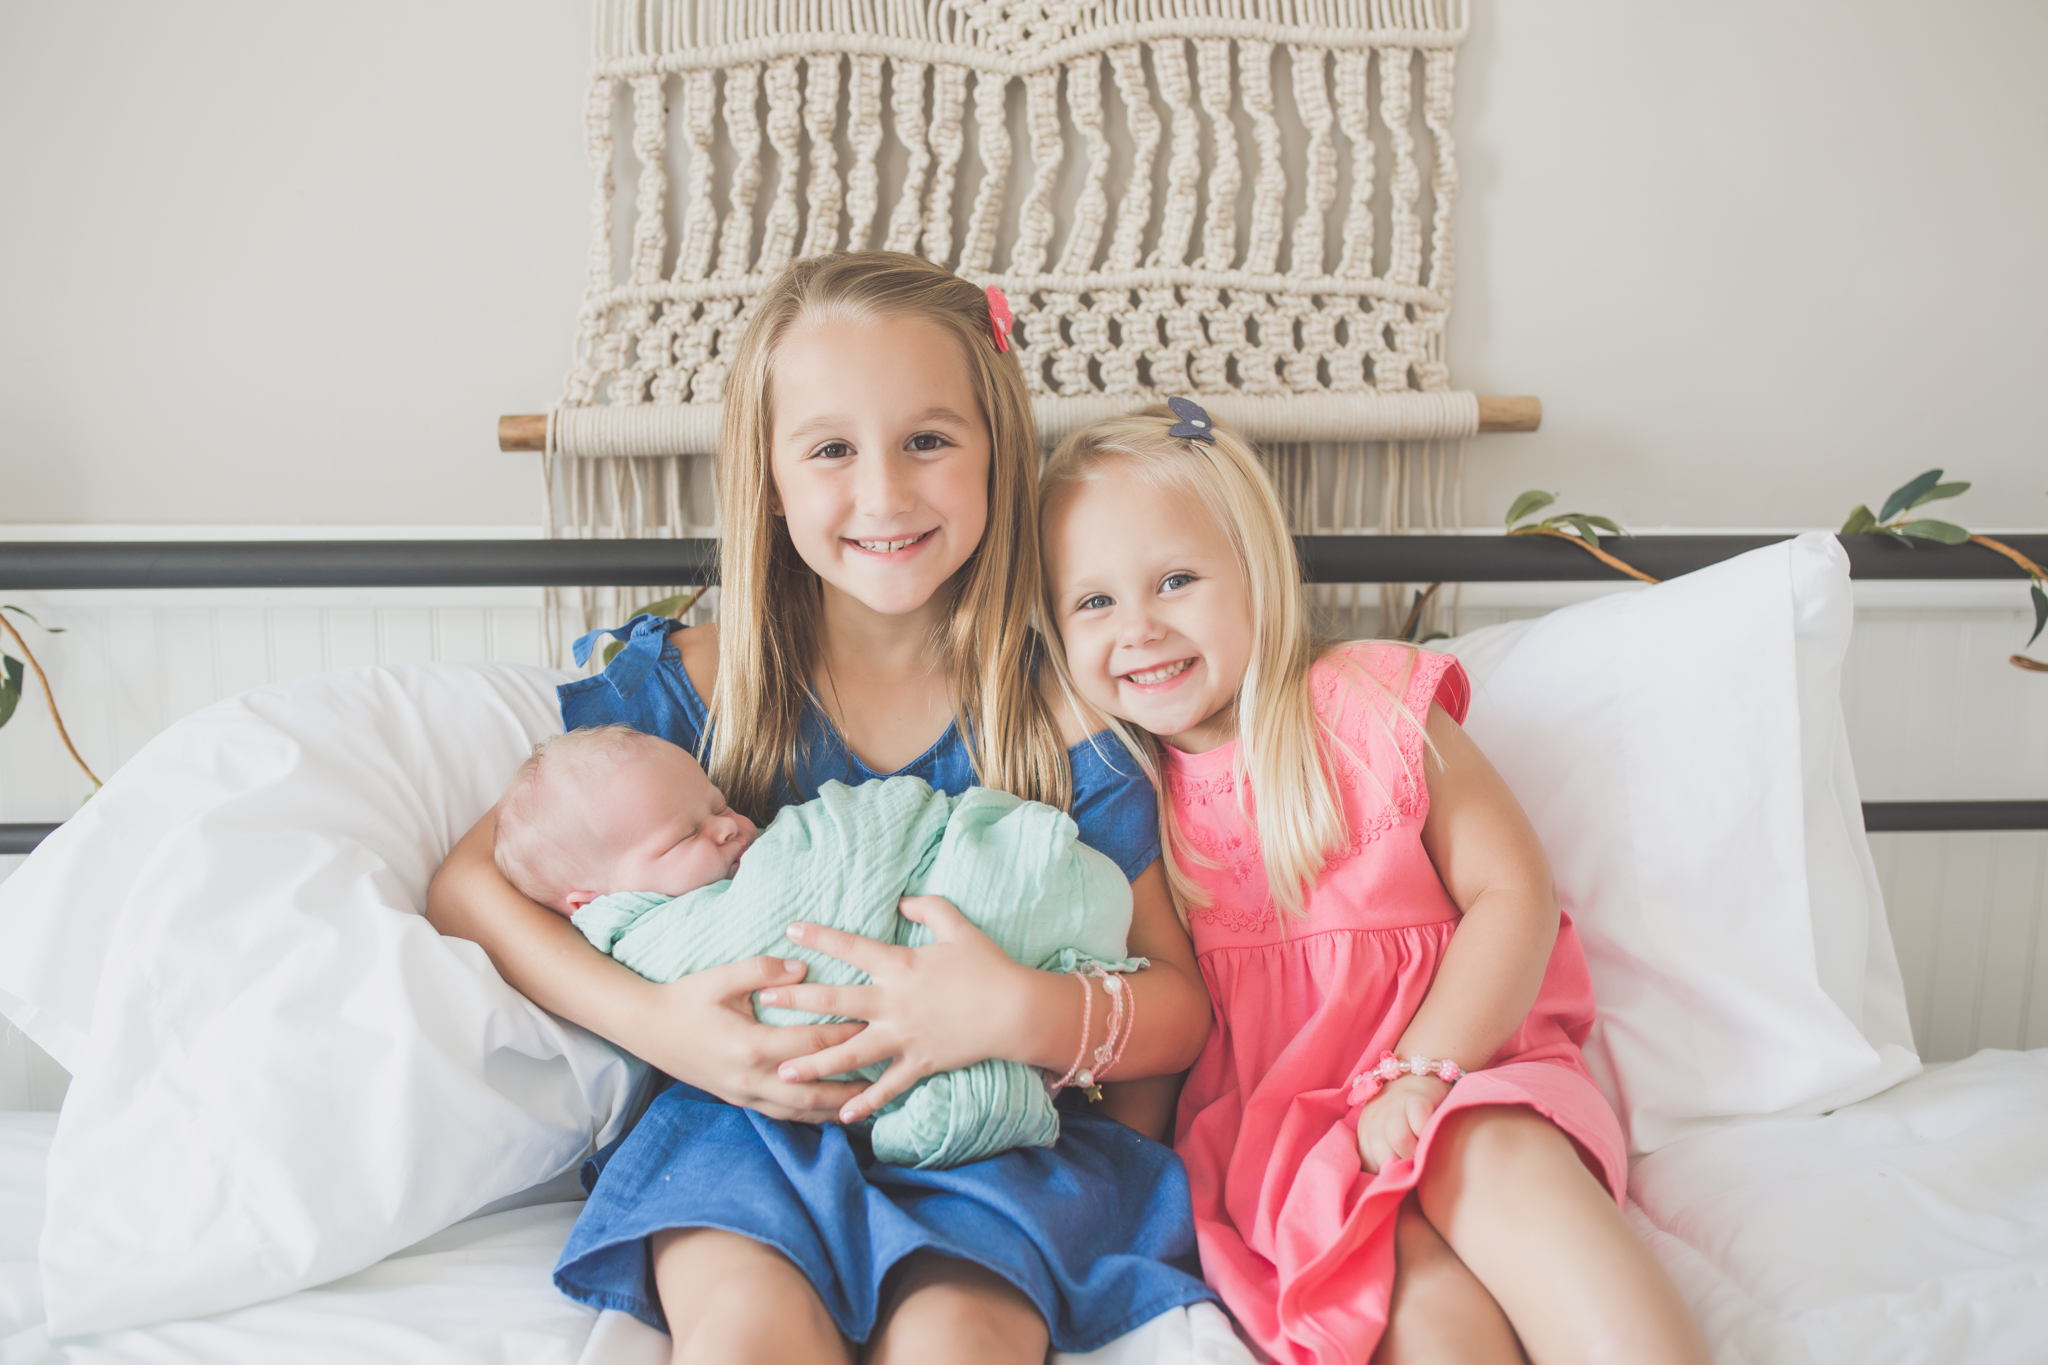 Sibling photos Newborn session photographer lifestyle studio - Cara Peterson Photography Rockford IL-5-10.jpg